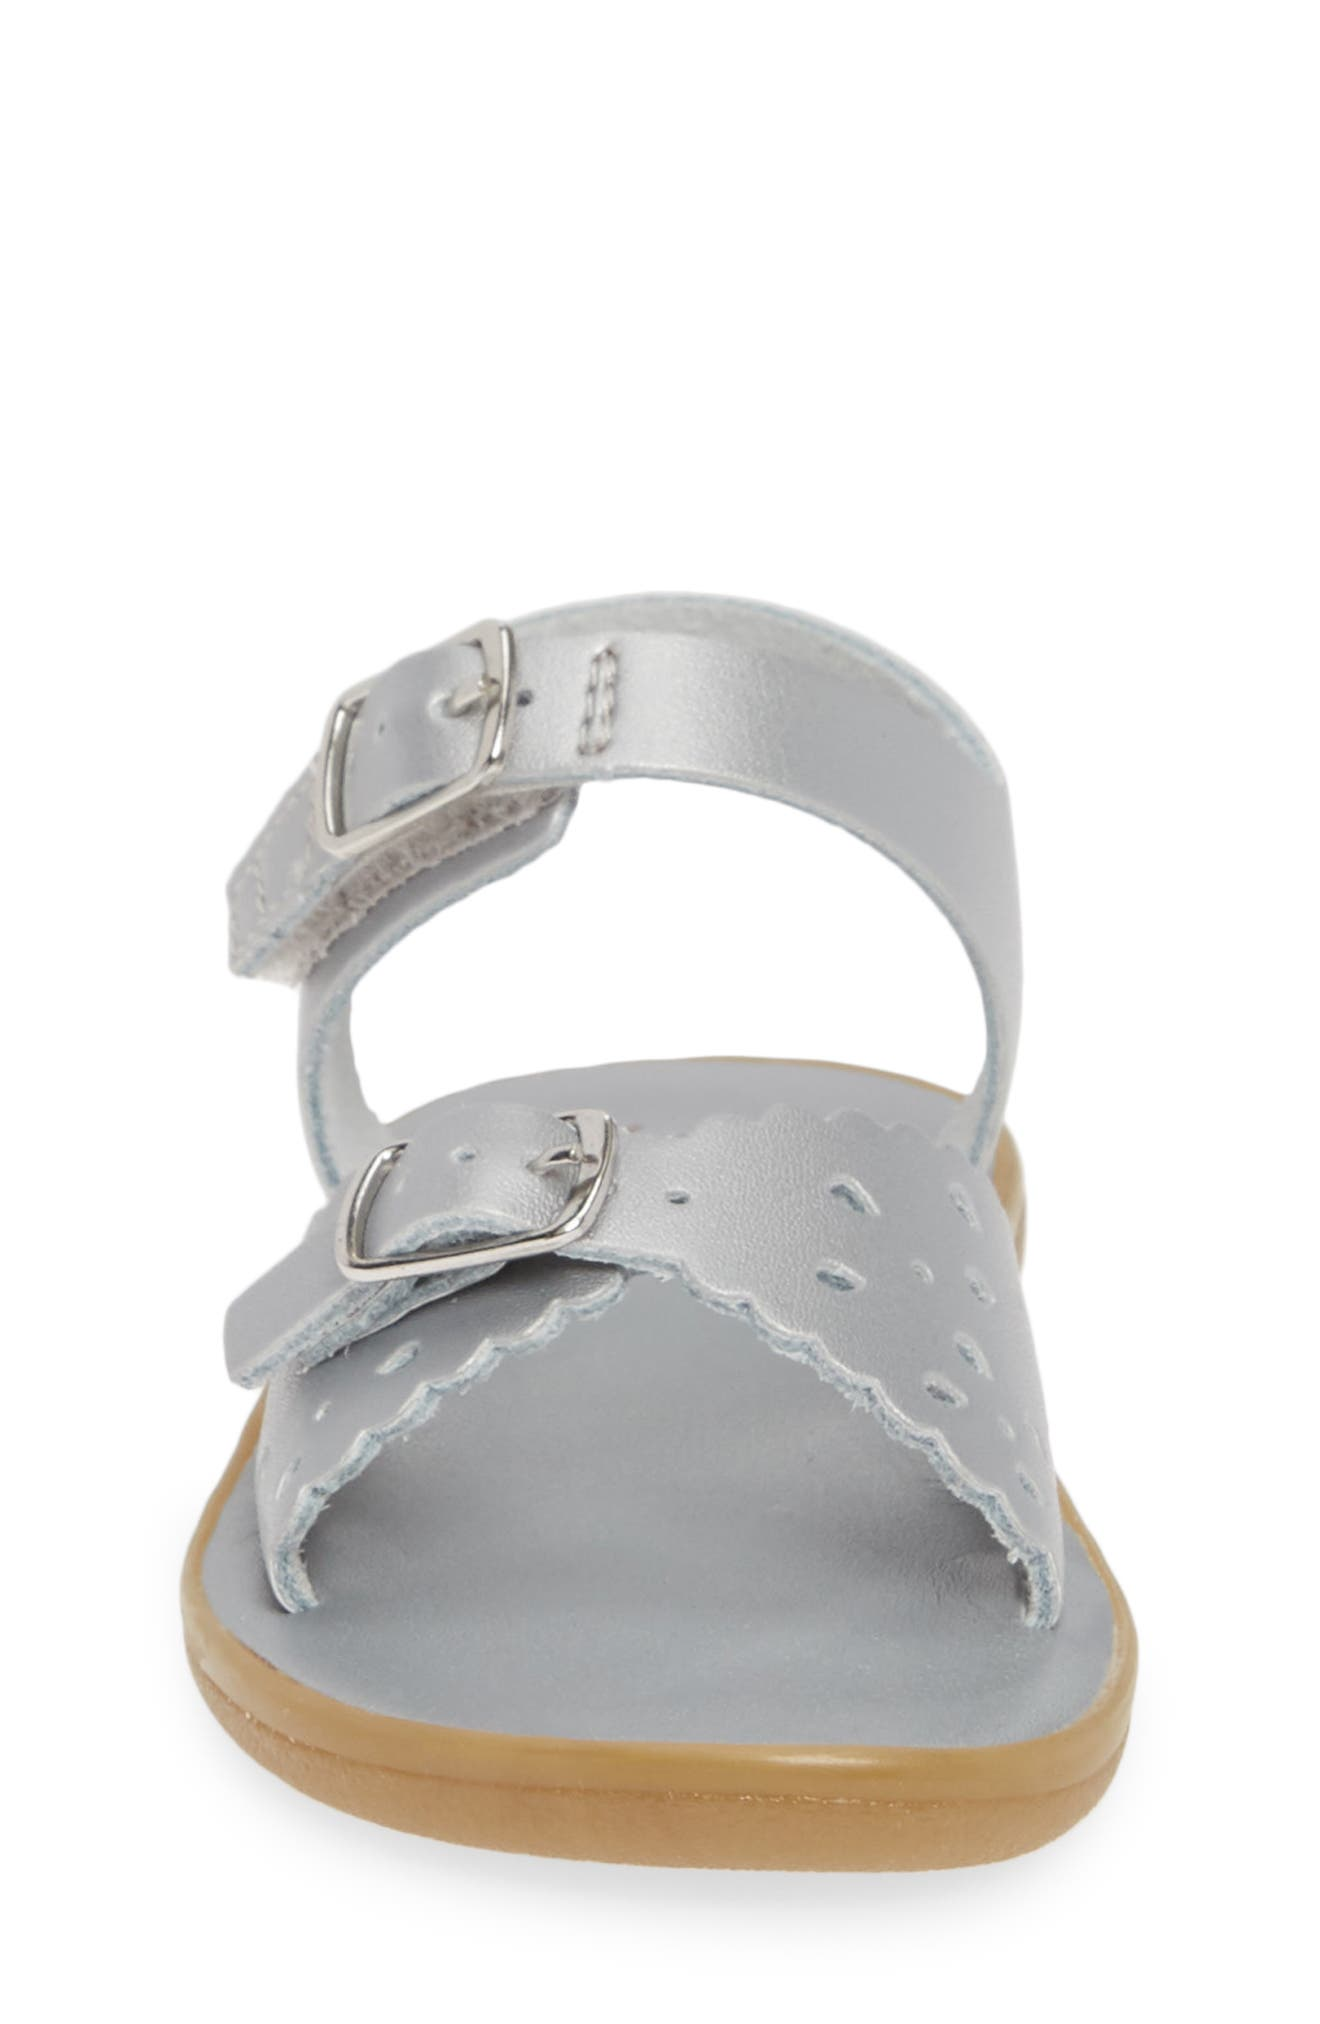 Ariel Waterproof Sandal,                             Alternate thumbnail 4, color,                             SILVER